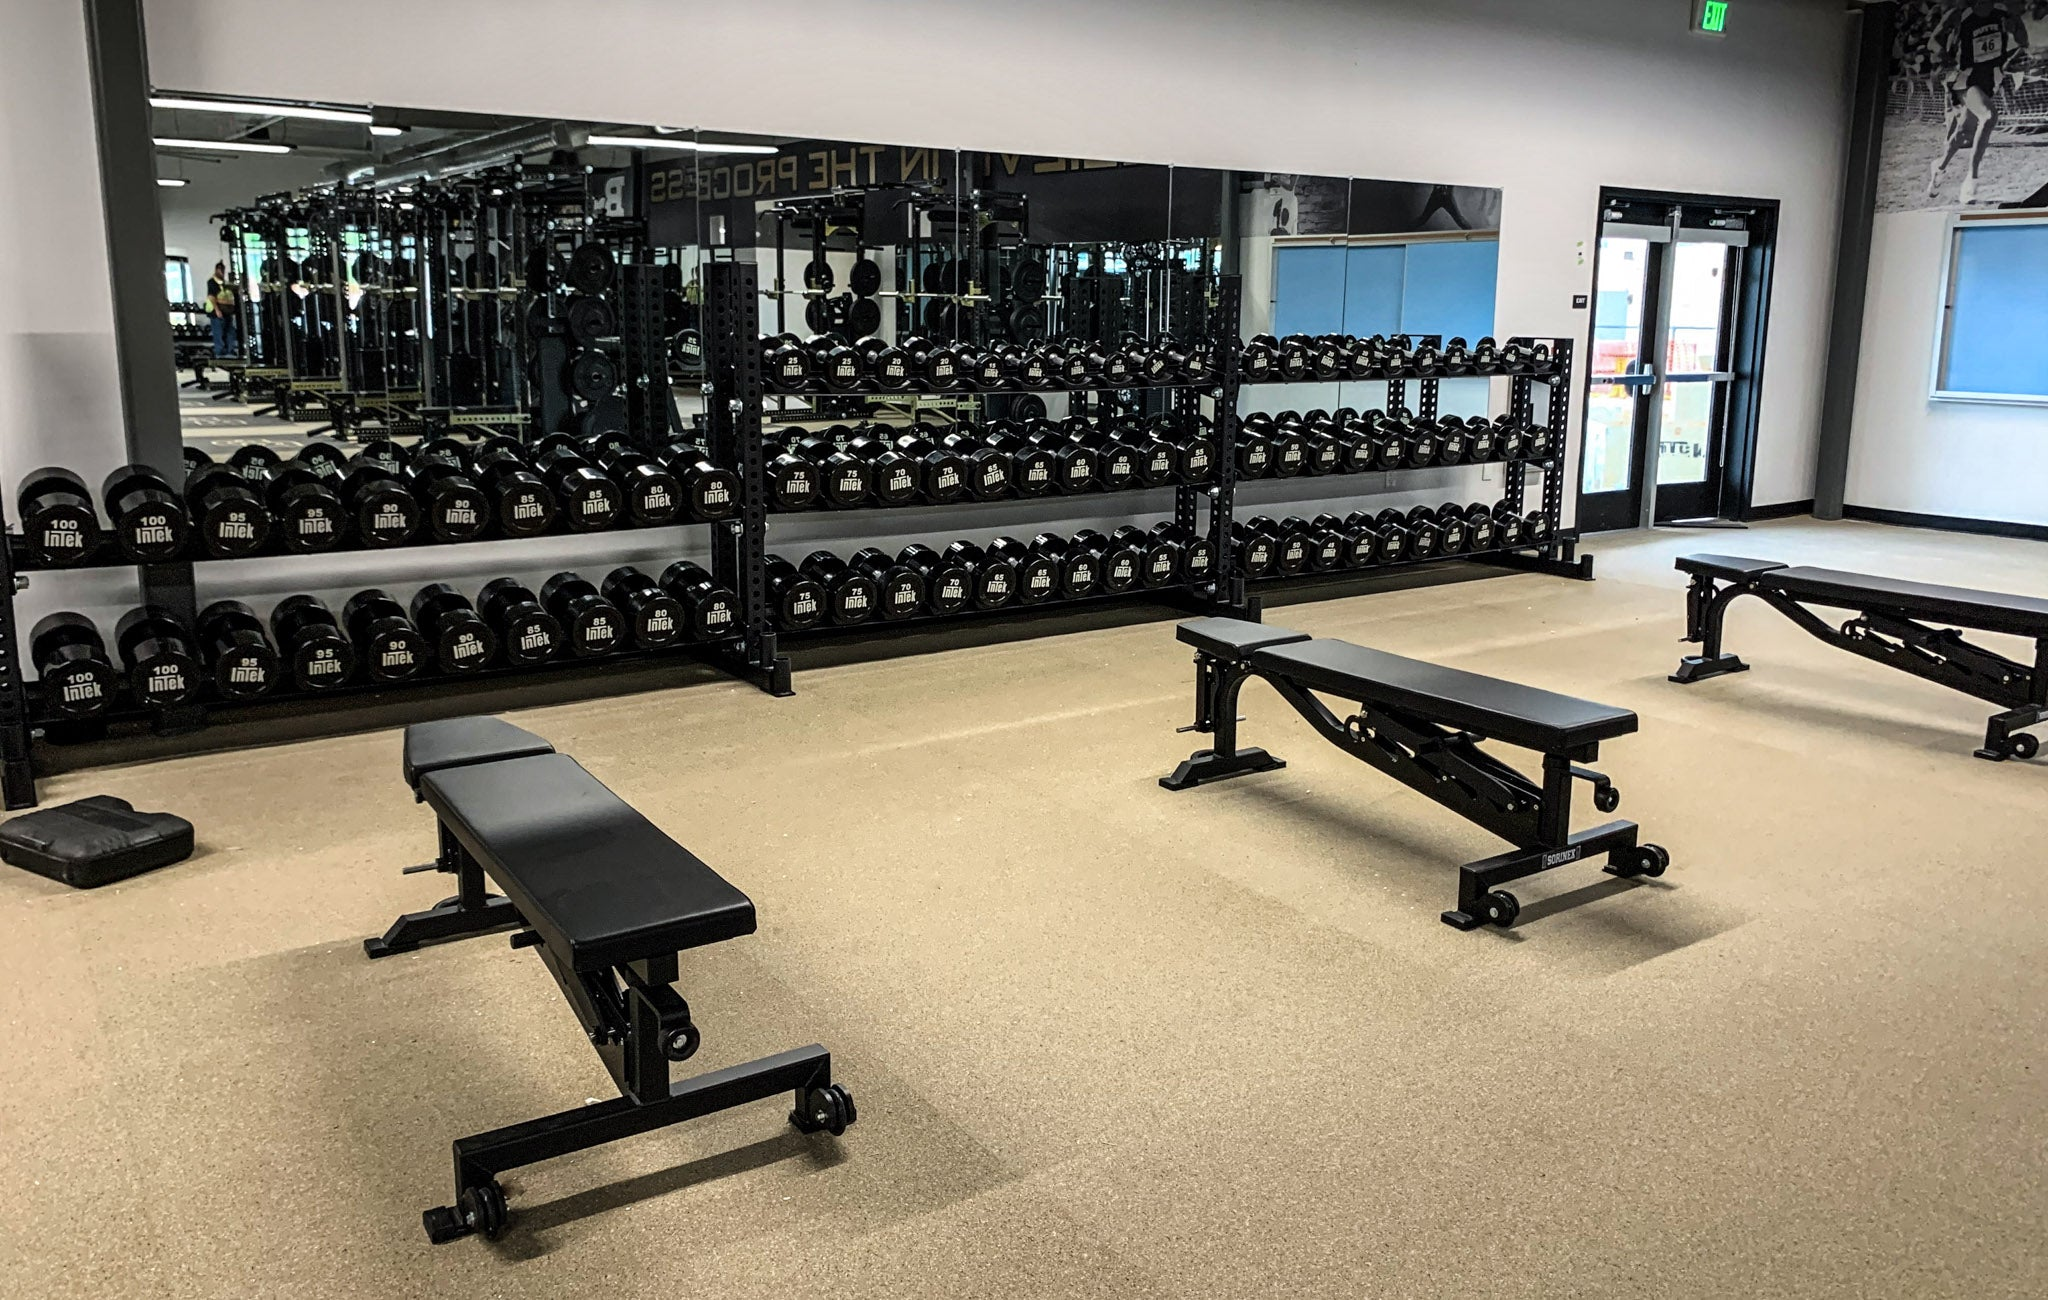 Butte football training facility